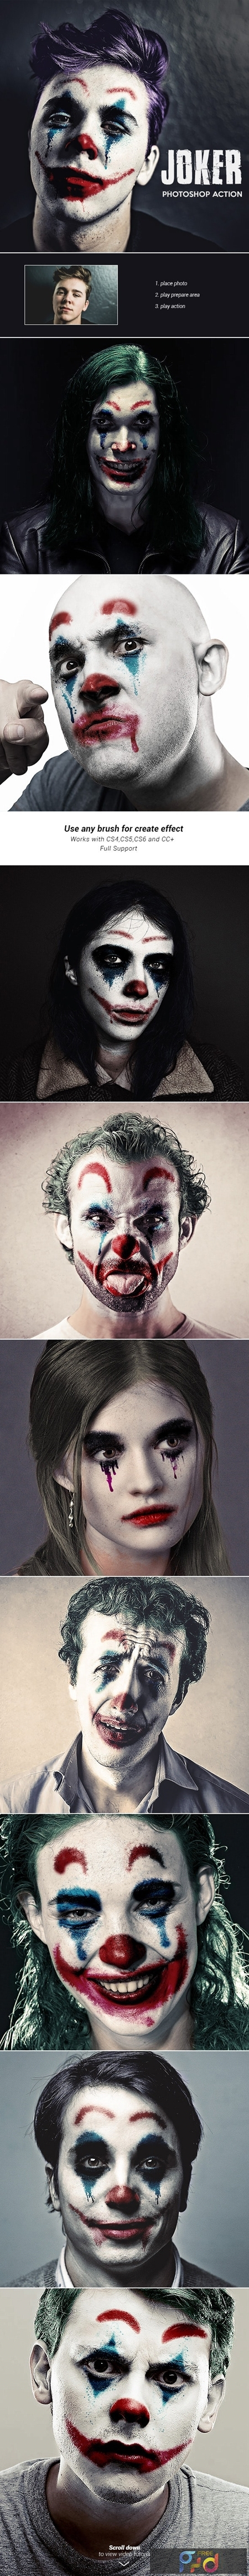 Joker - Photoshop Action 24686406 1